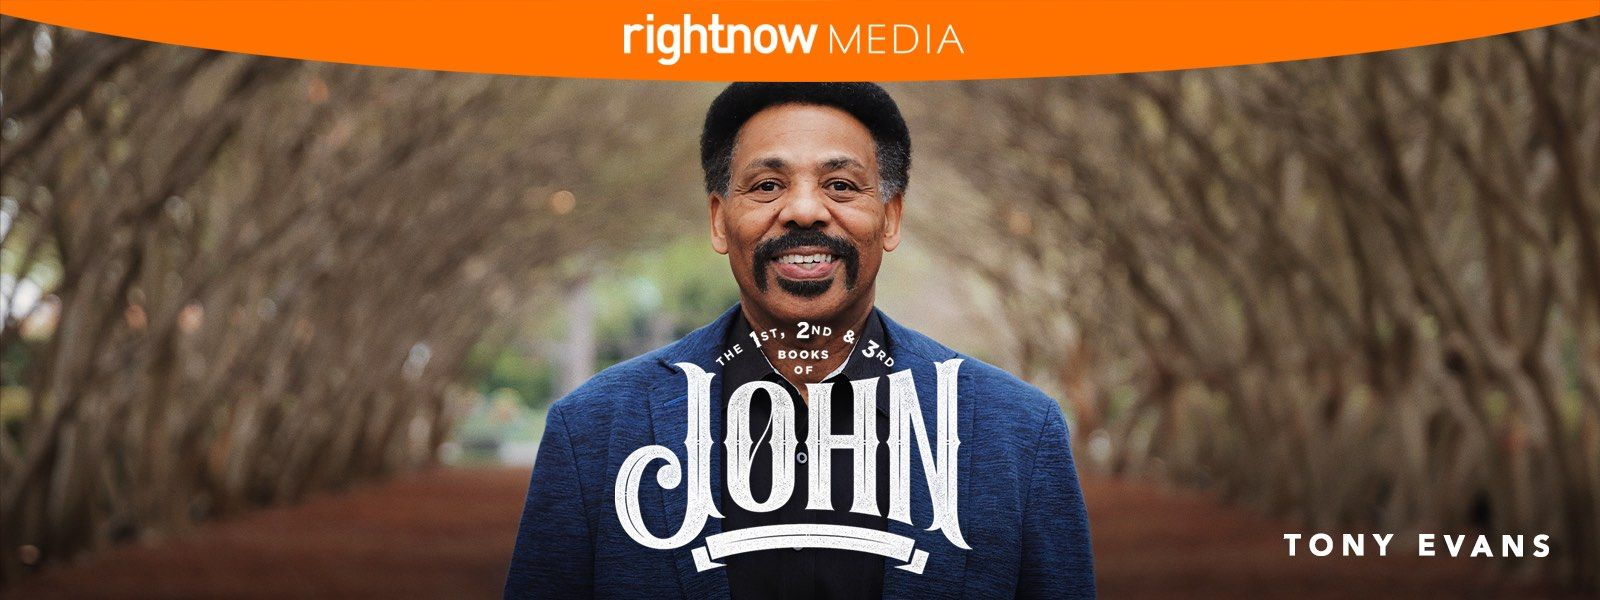 RightNow Media :: Streaming Video Bible Study : The Books of